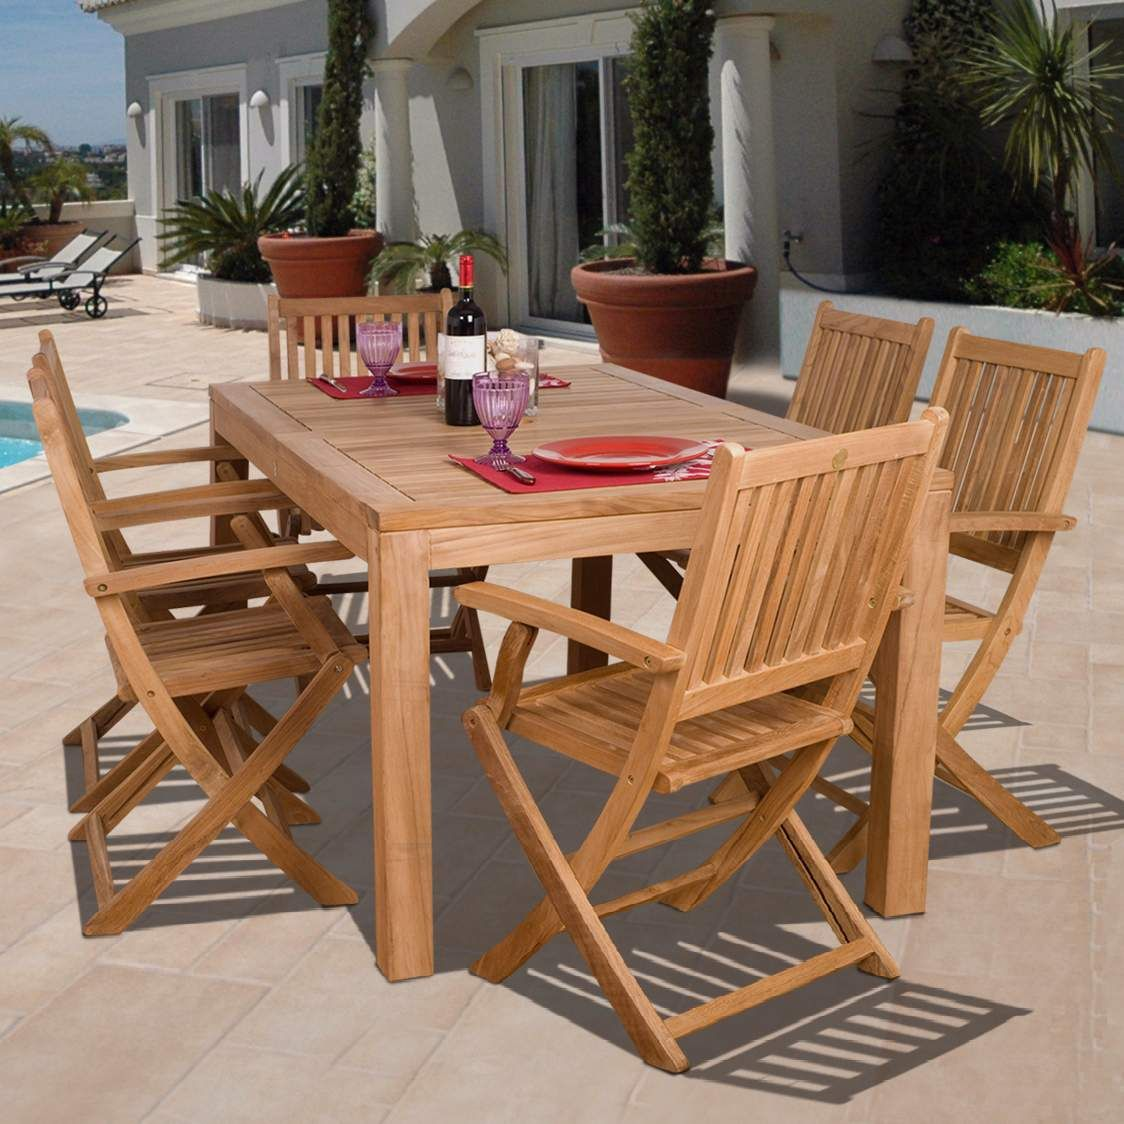 Outdoor Tables 7 Pieces Teak Loma Outdoor Dining Set Outdoor Dining Set Outdoor Tables Outdoor Table Settings